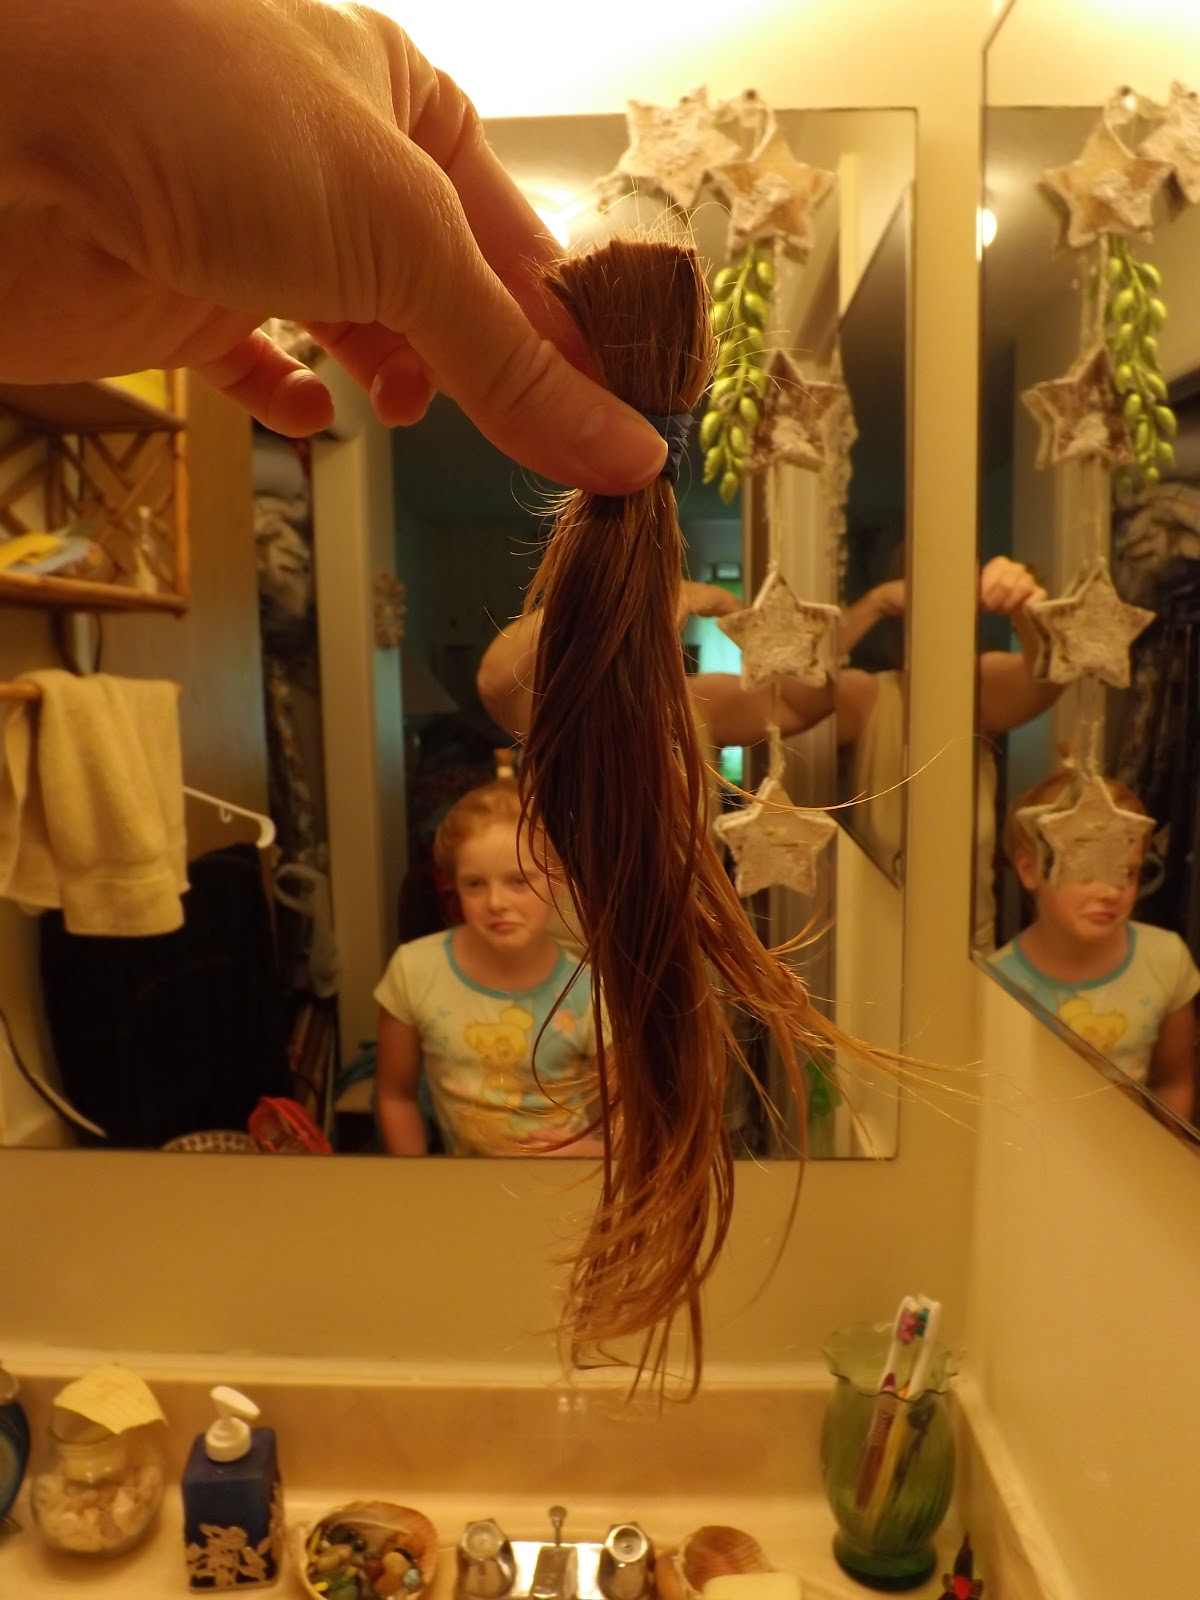 Debslubbing: Cutting your own curly hair